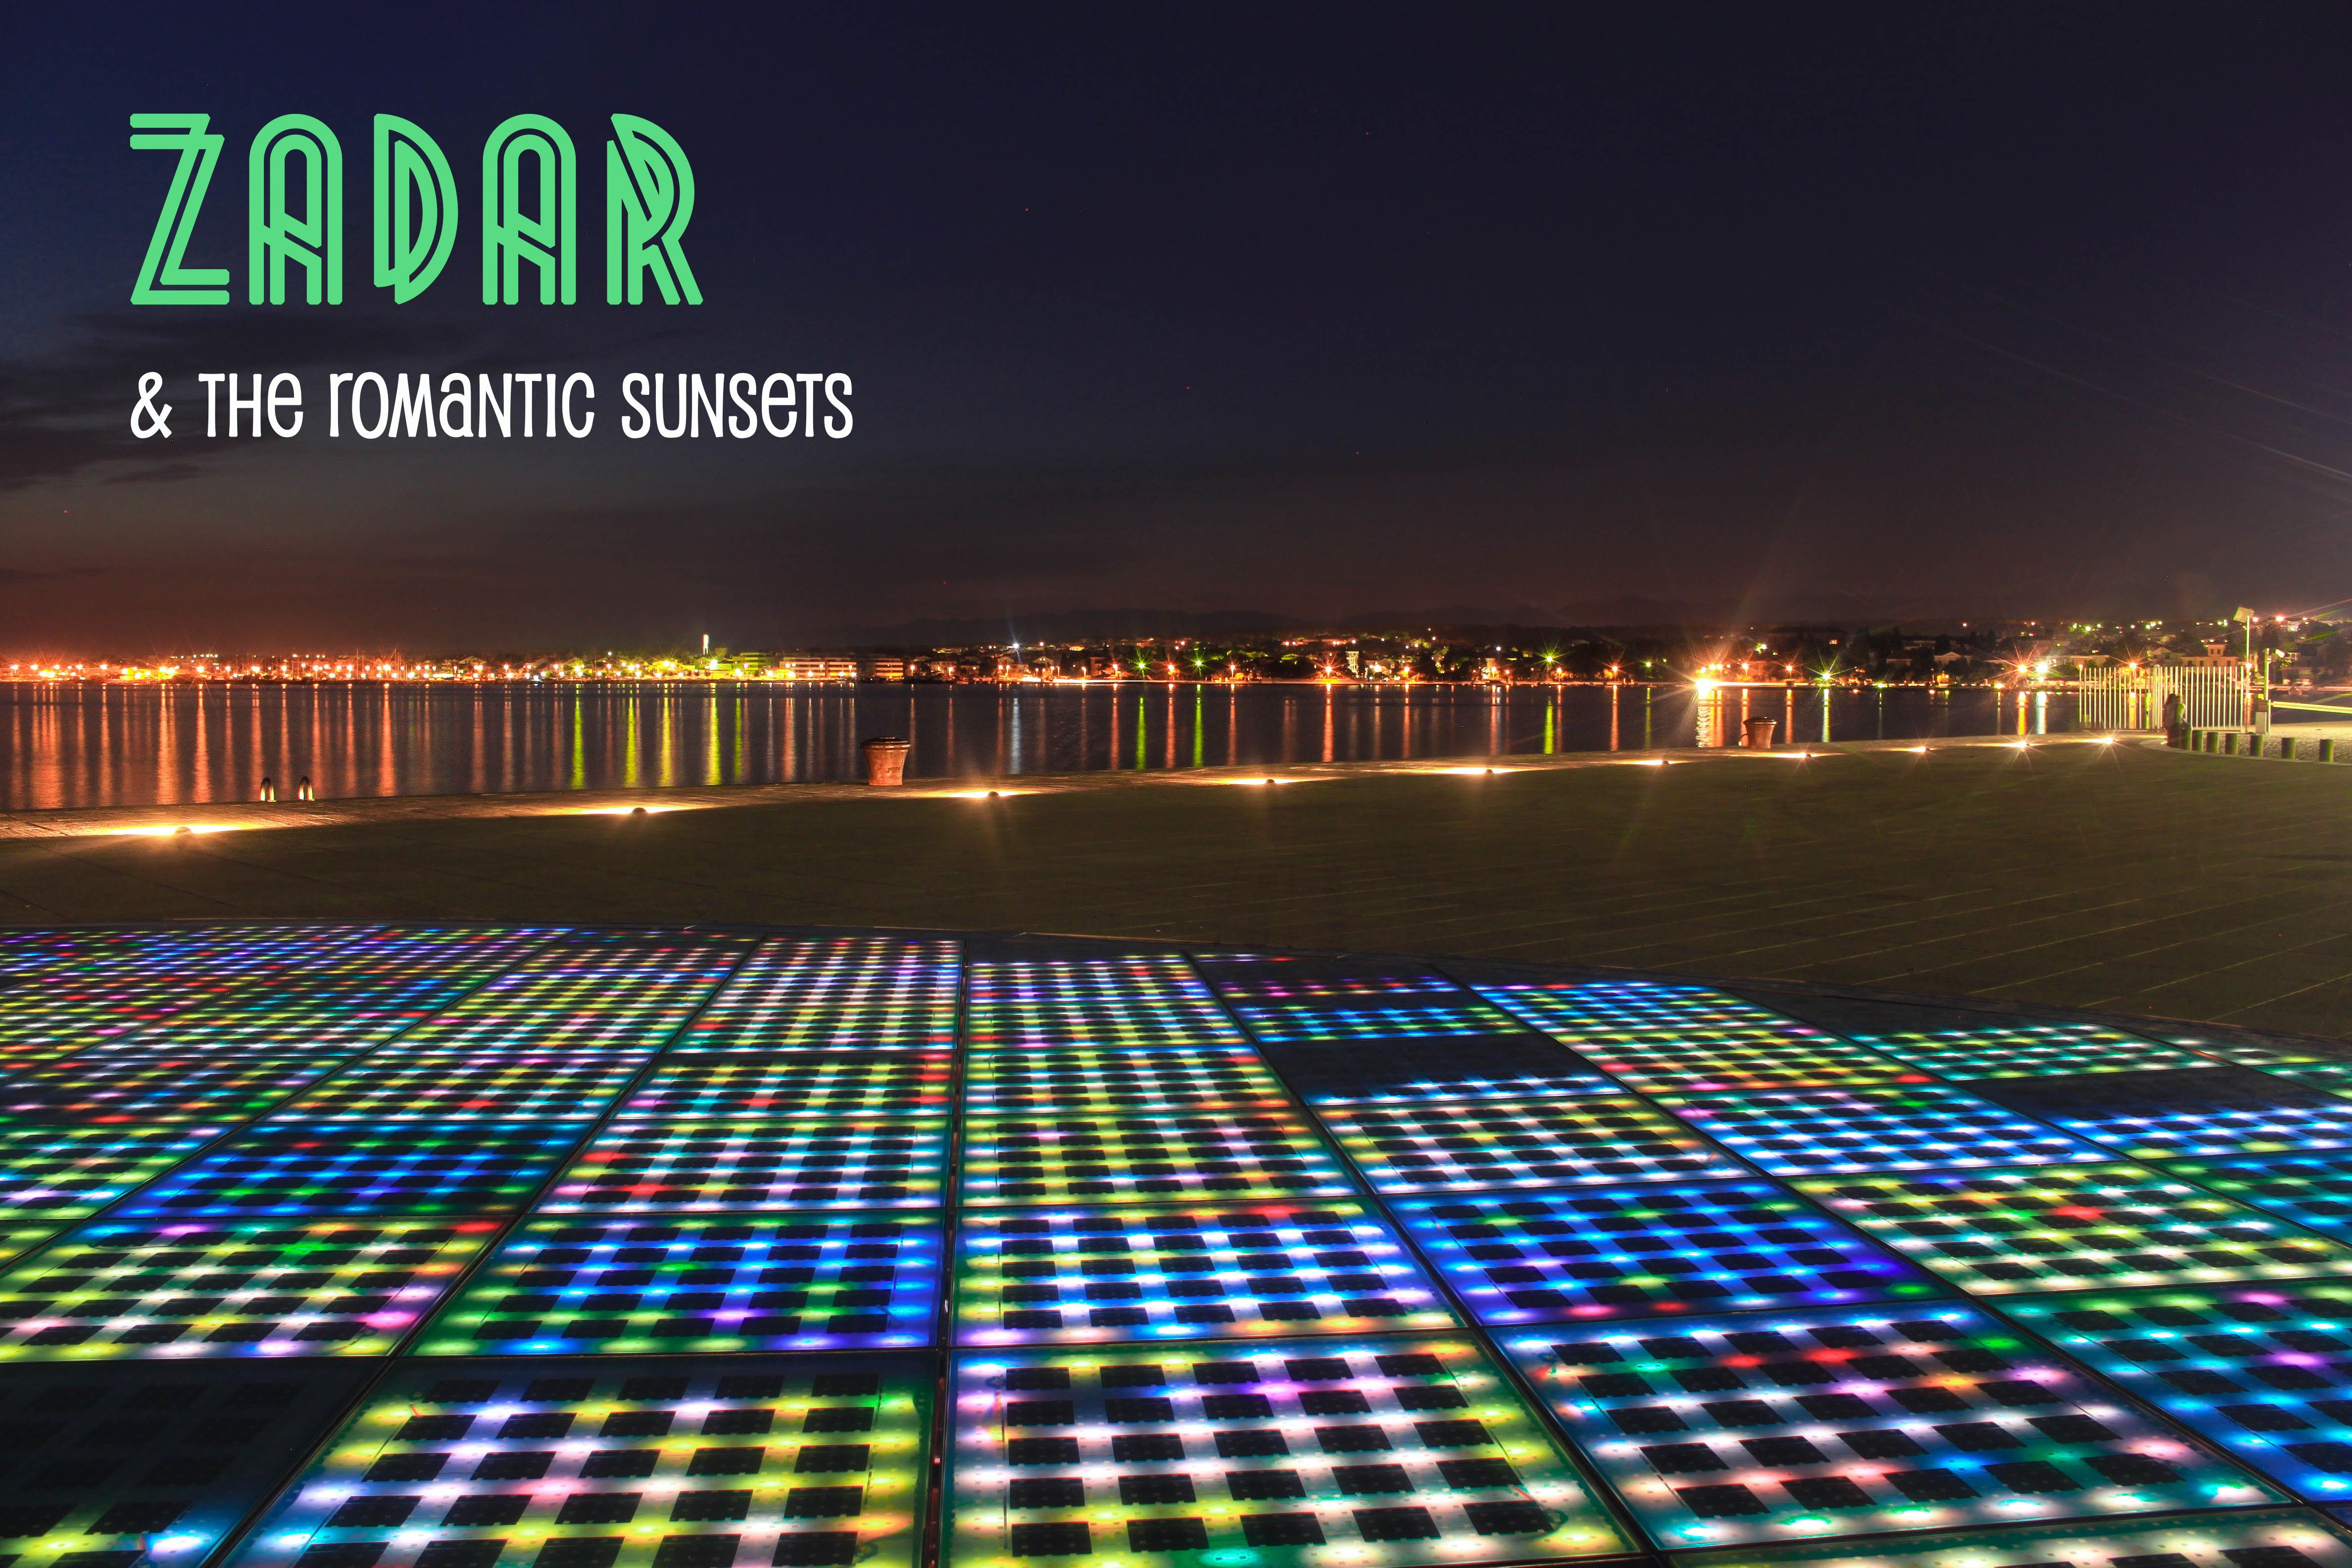 Zadar and the romantic sunsets   http://adventurousmiriam.com/zadar-and-the-romantic-sunsets/